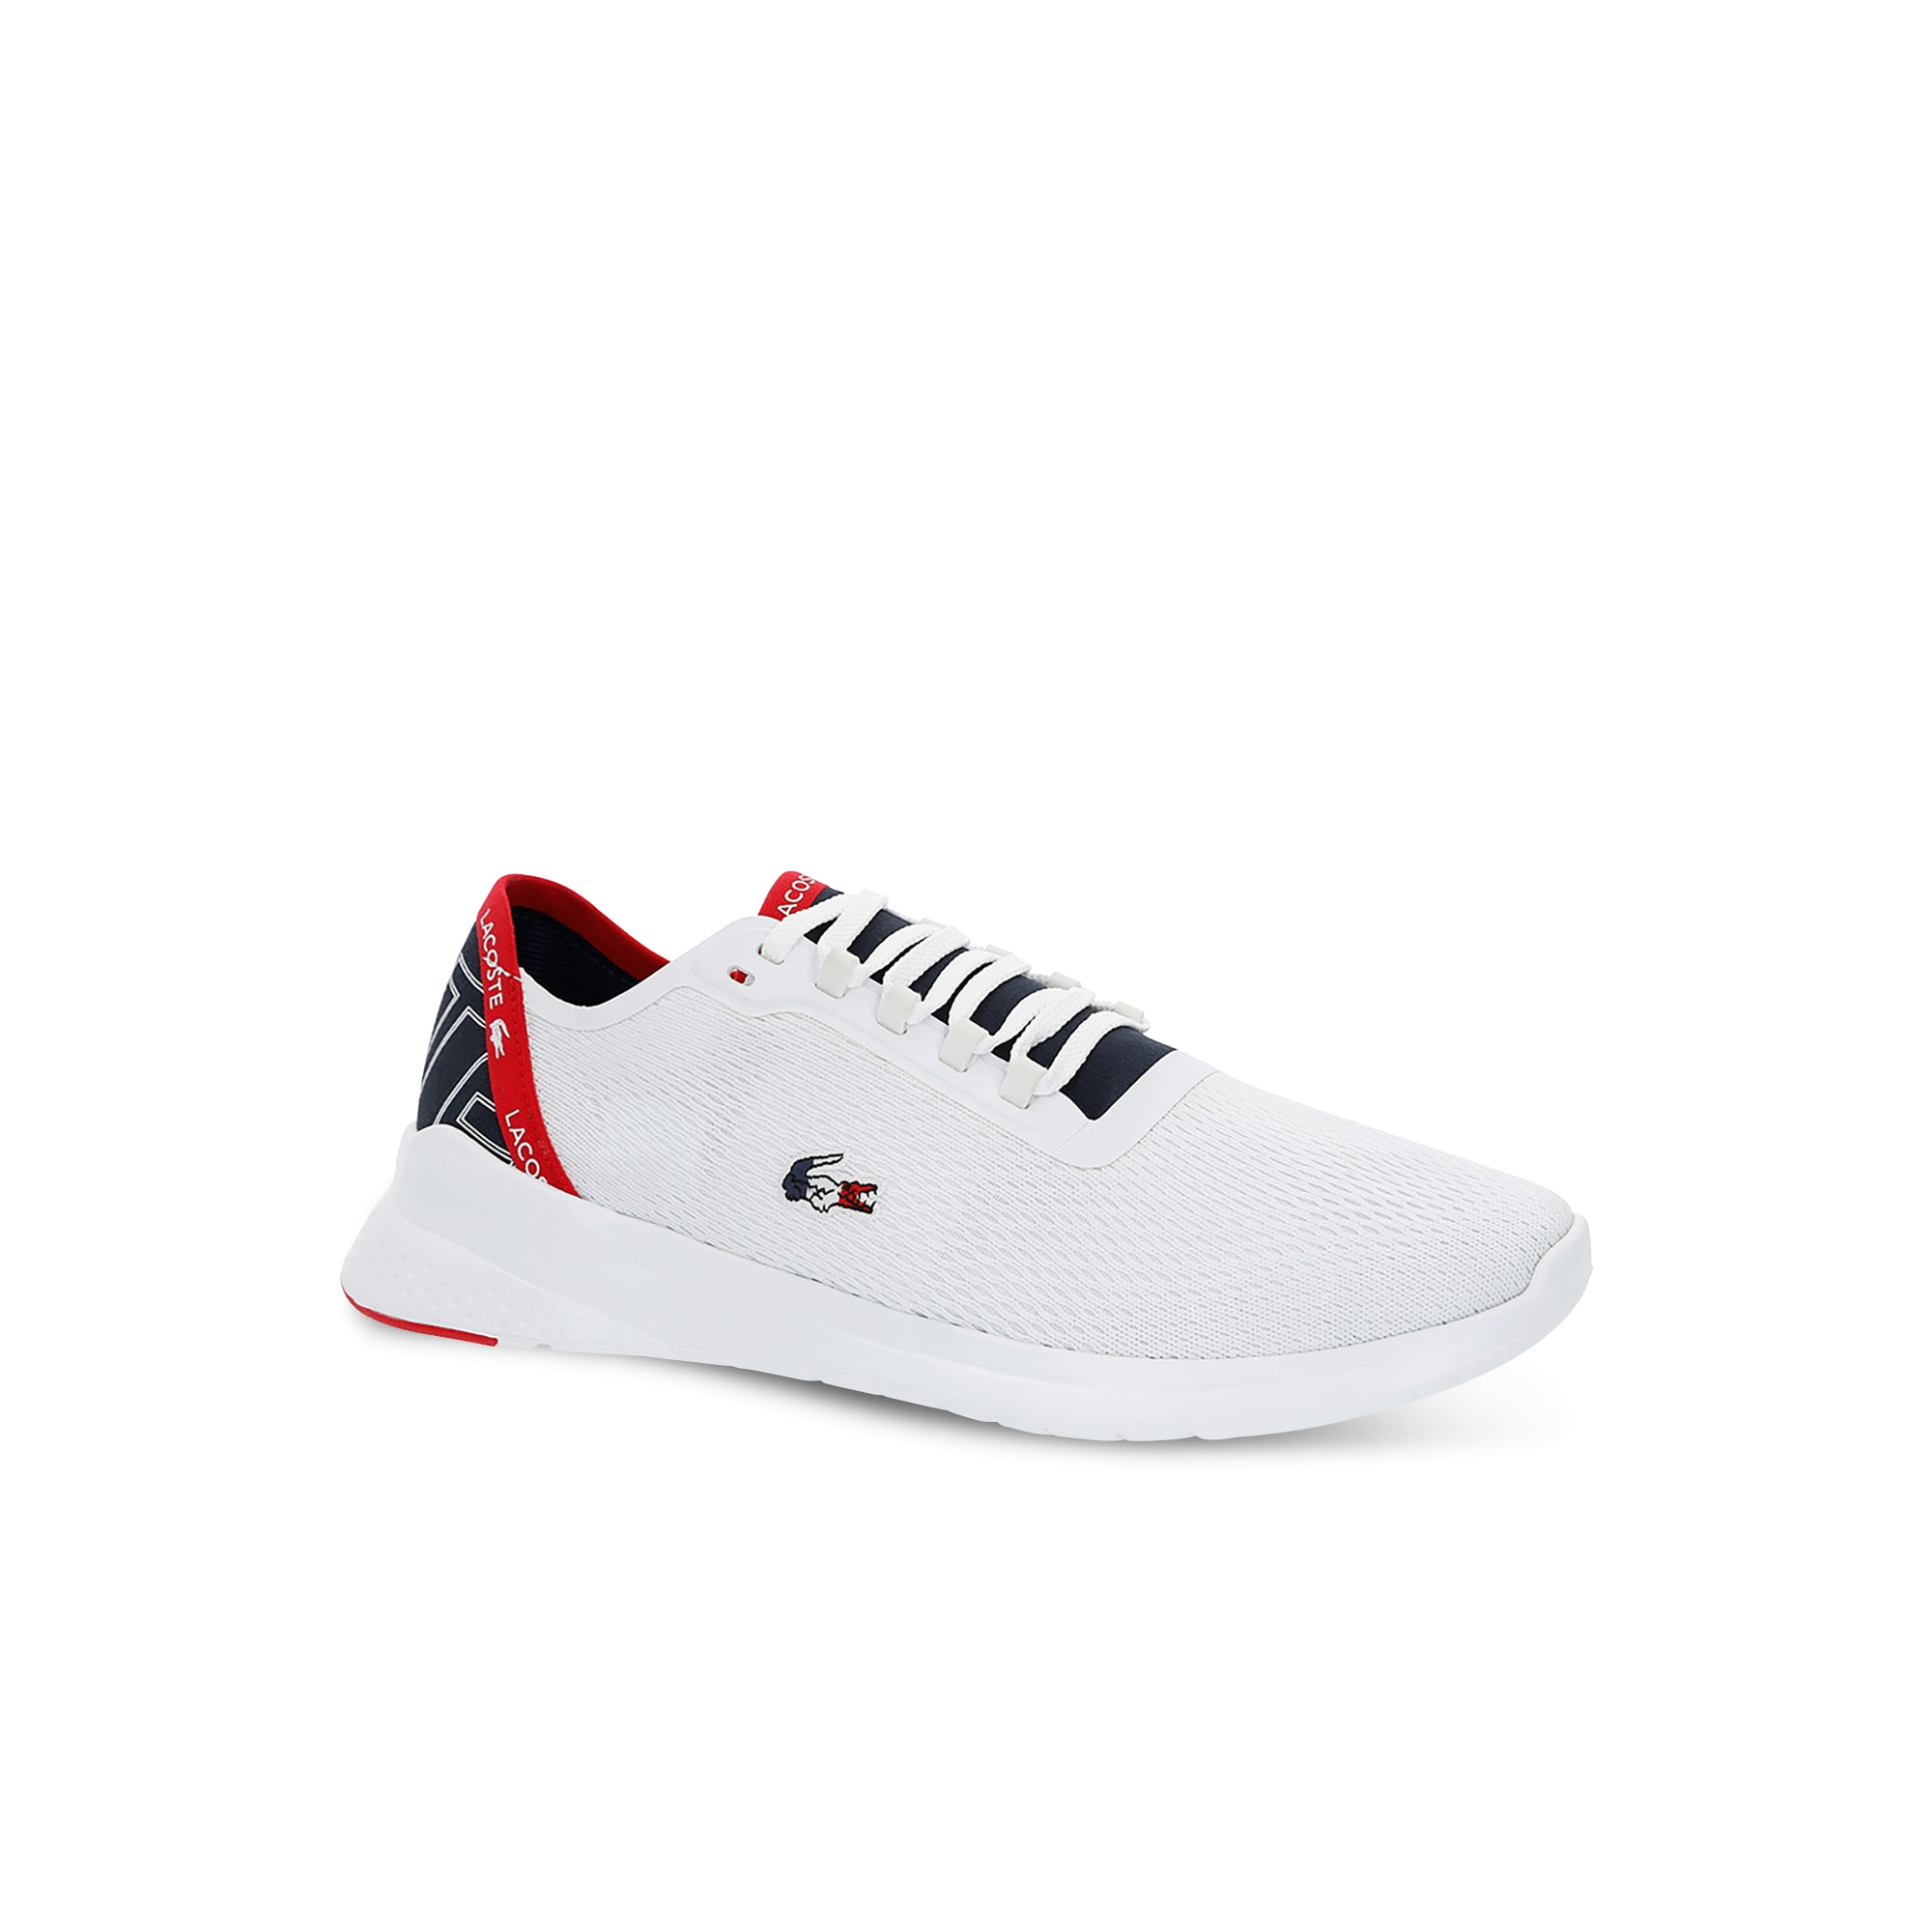 f4d846d65 Men s LT Fit Sneakers with Tricolor Croc